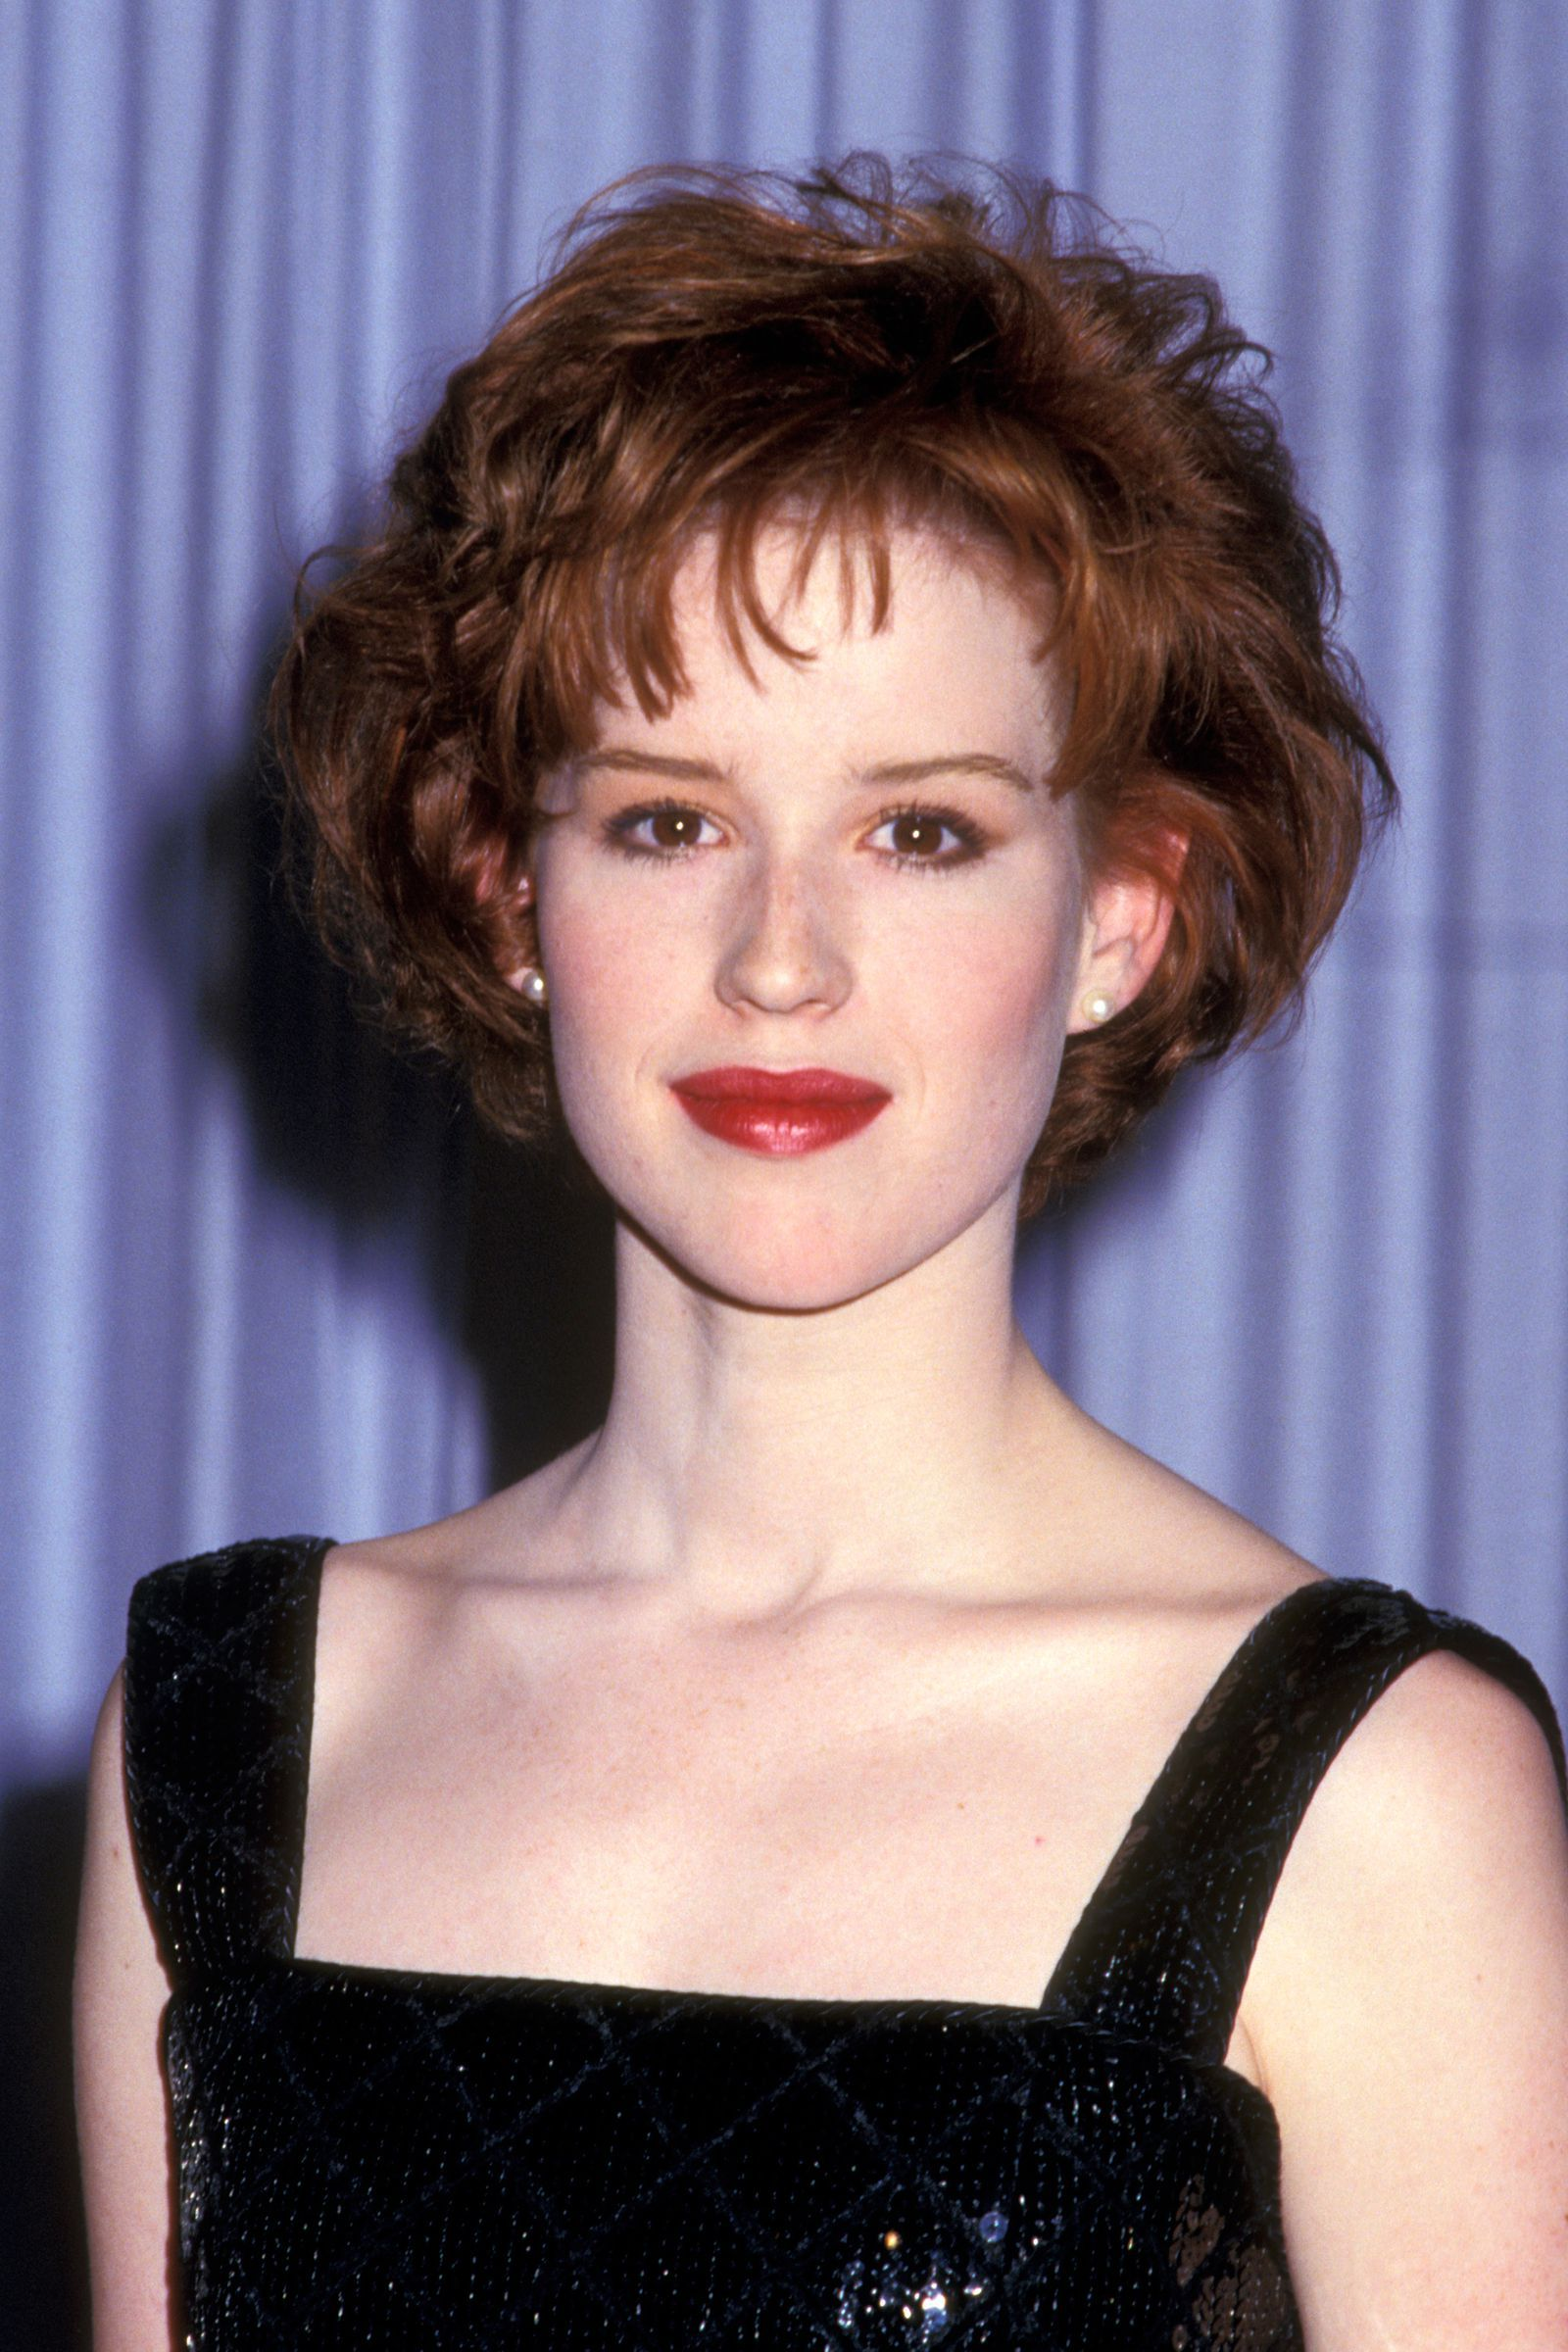 The 36 Hottest Makeup Trends From The Year You Were Born Until Today 80s Makeup Looks Makeup Looks Molly Ringwald